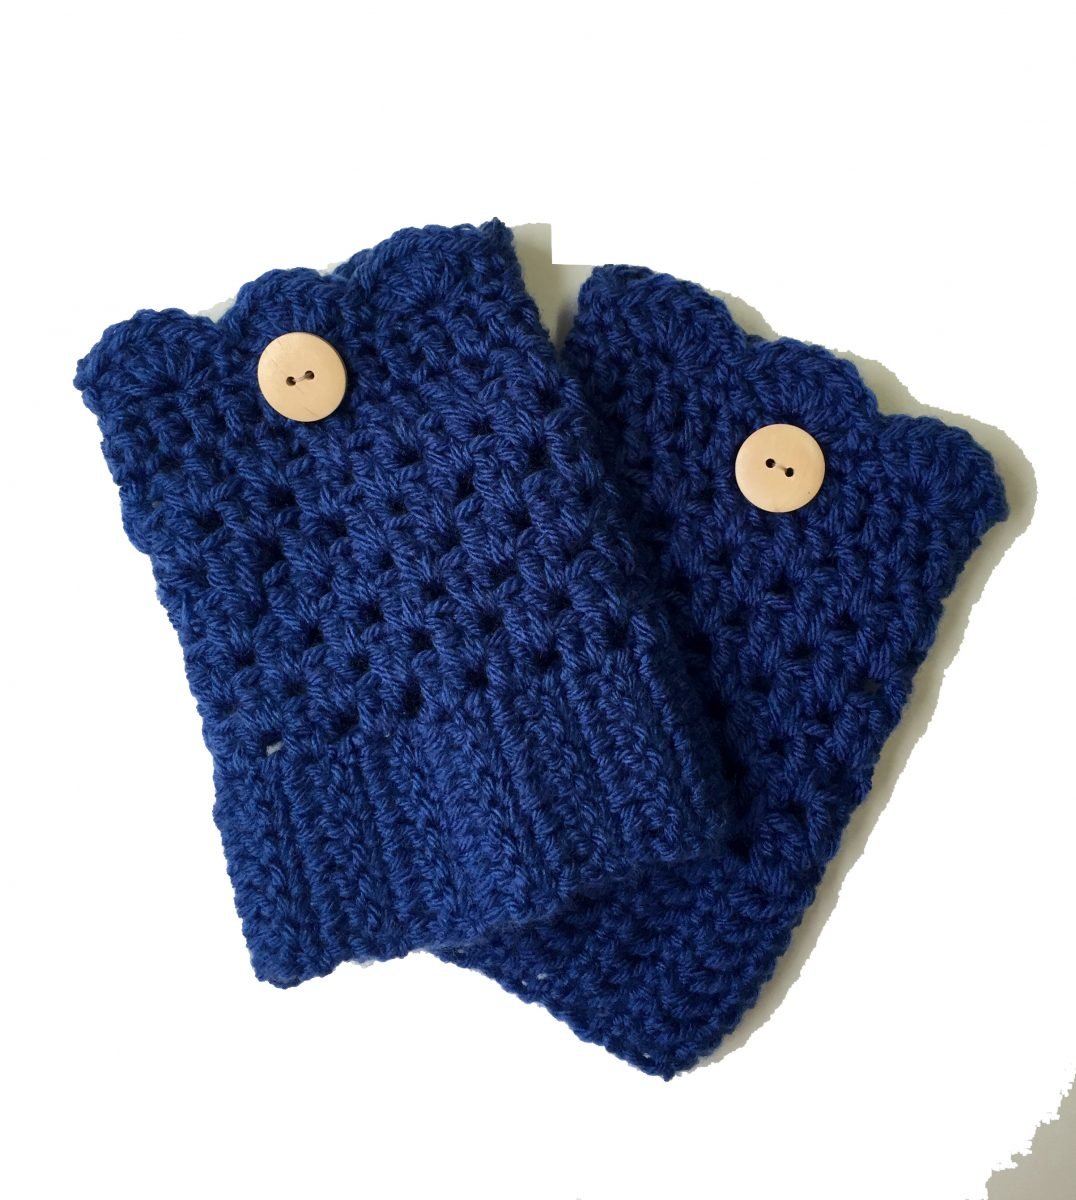 grace boot cuffs with whte